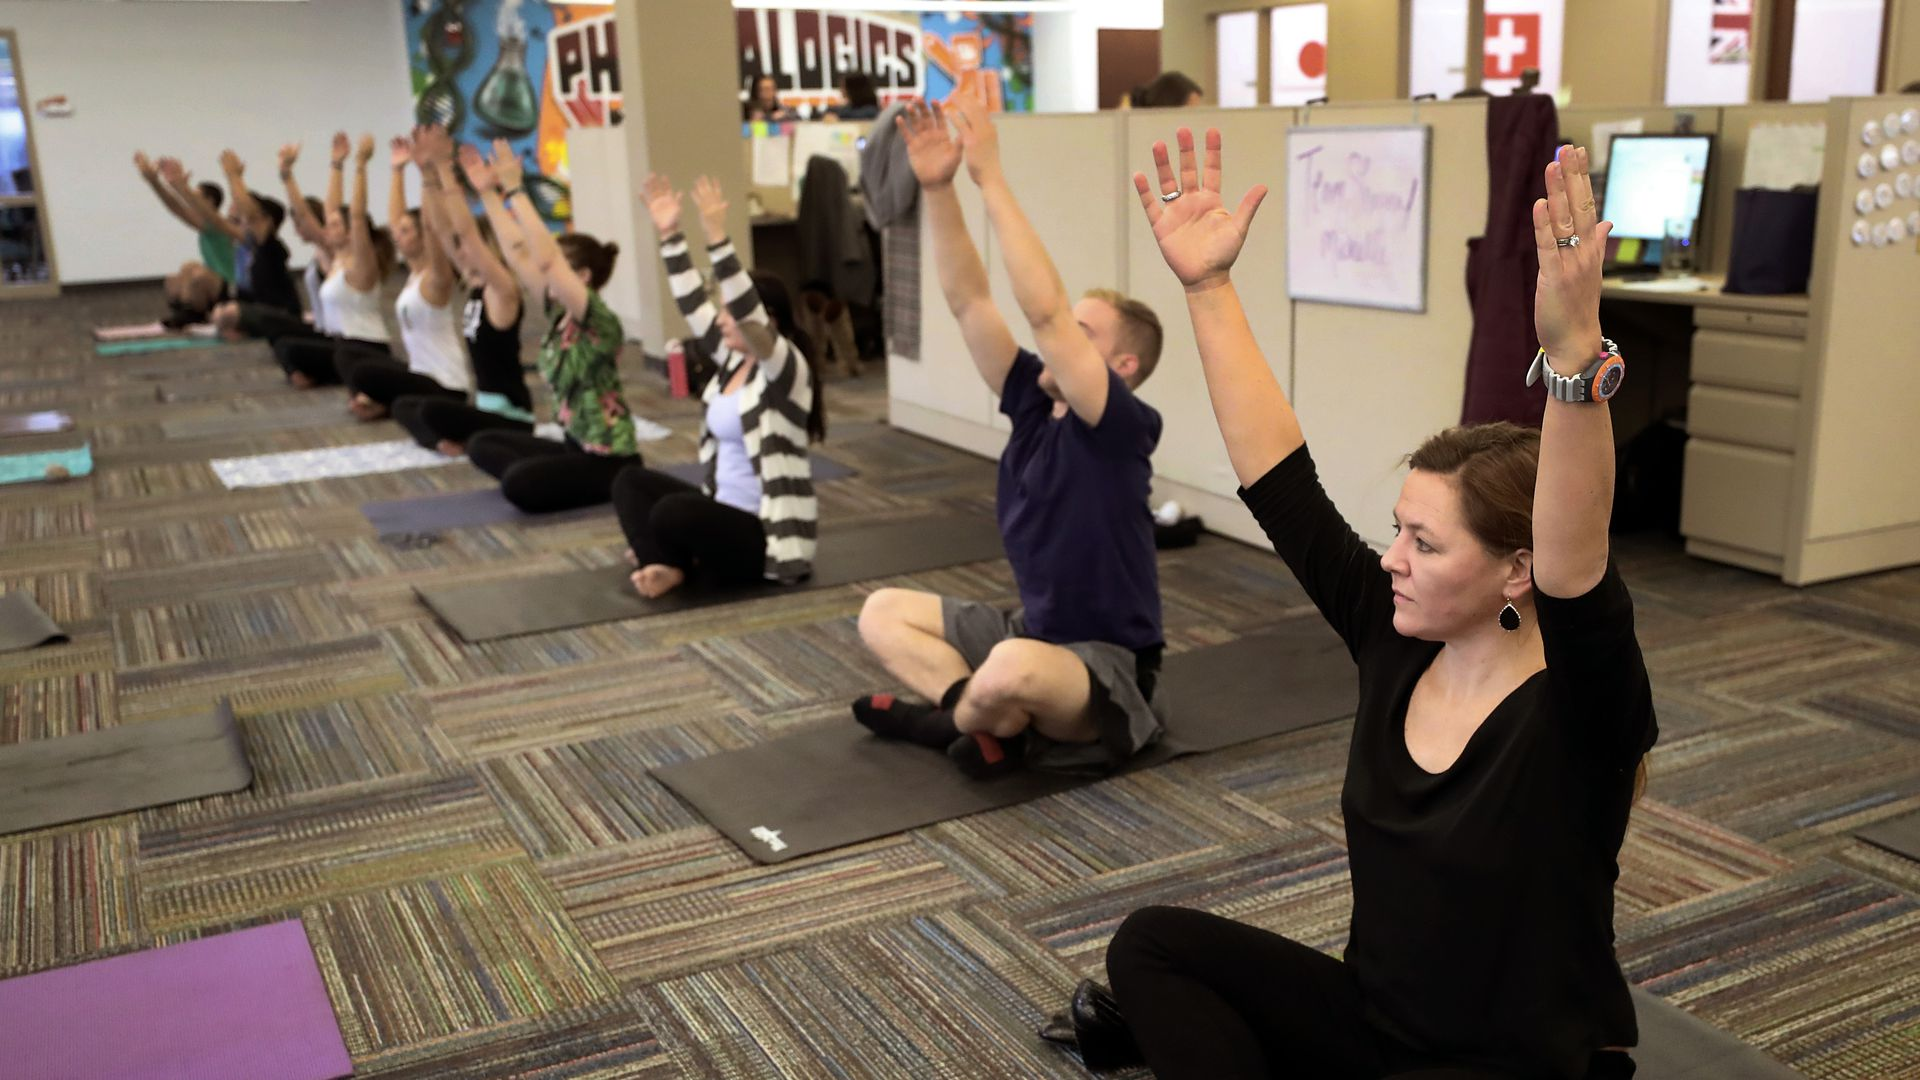 Employees practice yoga in the office.